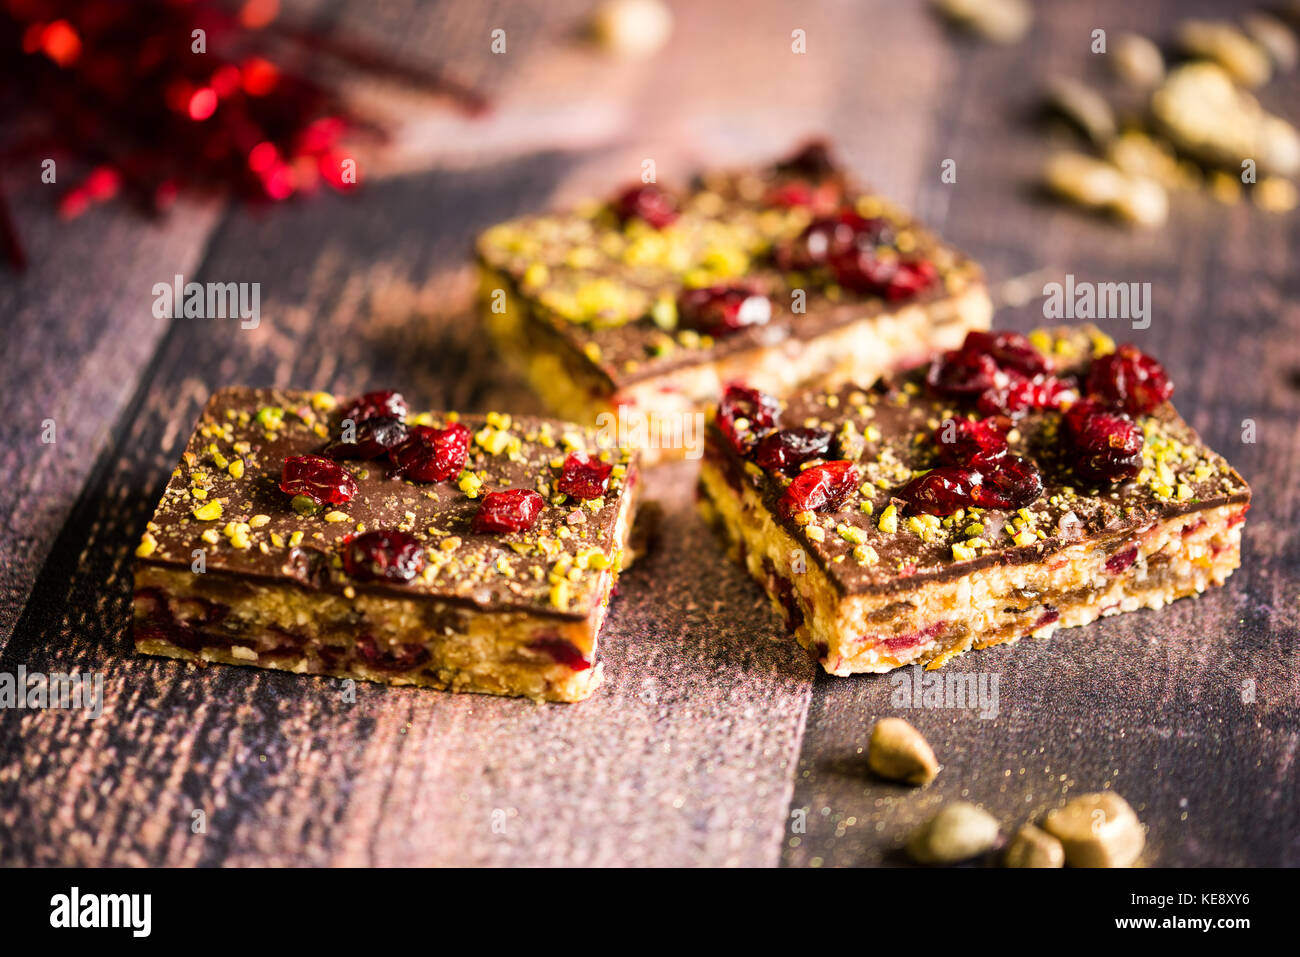 Chocolate Nancy. Pistacchio, cranberry and apricot brownie - Stock Image